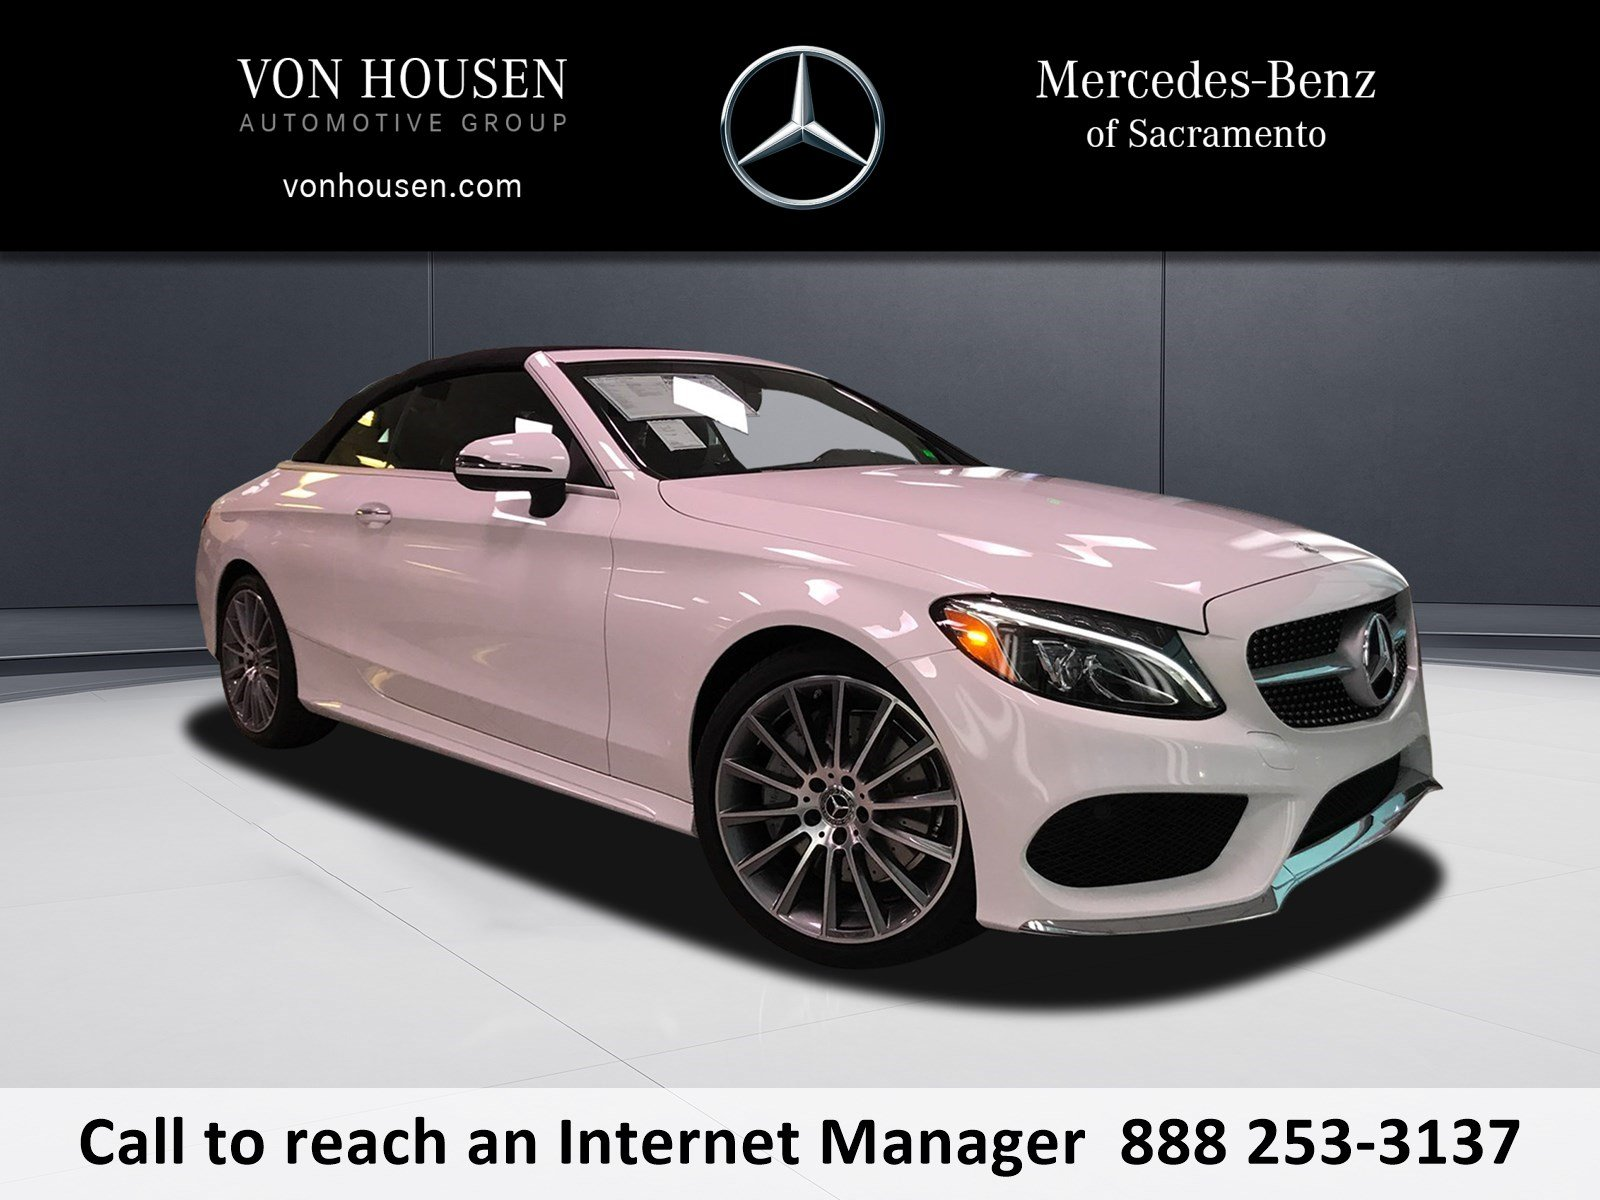 New 2018 Mercedes Benz C Class C 300 Sport CABRIOLET in Sacramento